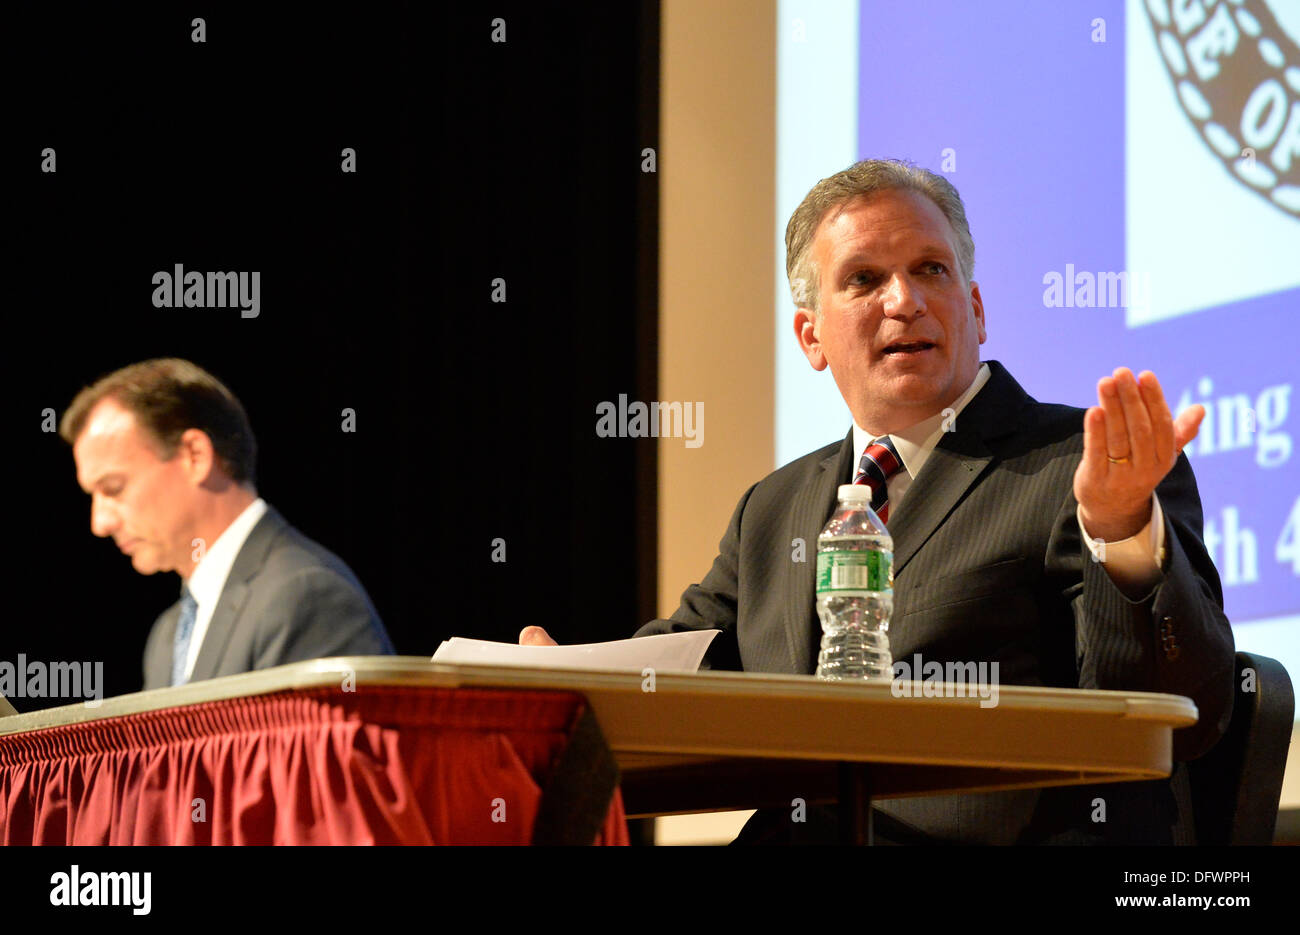 Old Westbury, New York, U.S. 8th October 2013. R-L, Republican EDWARD MANGANO, the Nassau County Executive, and Democrat THOMAS SUOZZI, the former County Executive, face each other in a debate hosted by the Nassau County Village Officials Association, representing 64 incorporated villages with 450,000 residents, as the opponents face a rematch in the 2013 November elections. Credit:  Ann E Parry/Alamy Live News - Stock Image